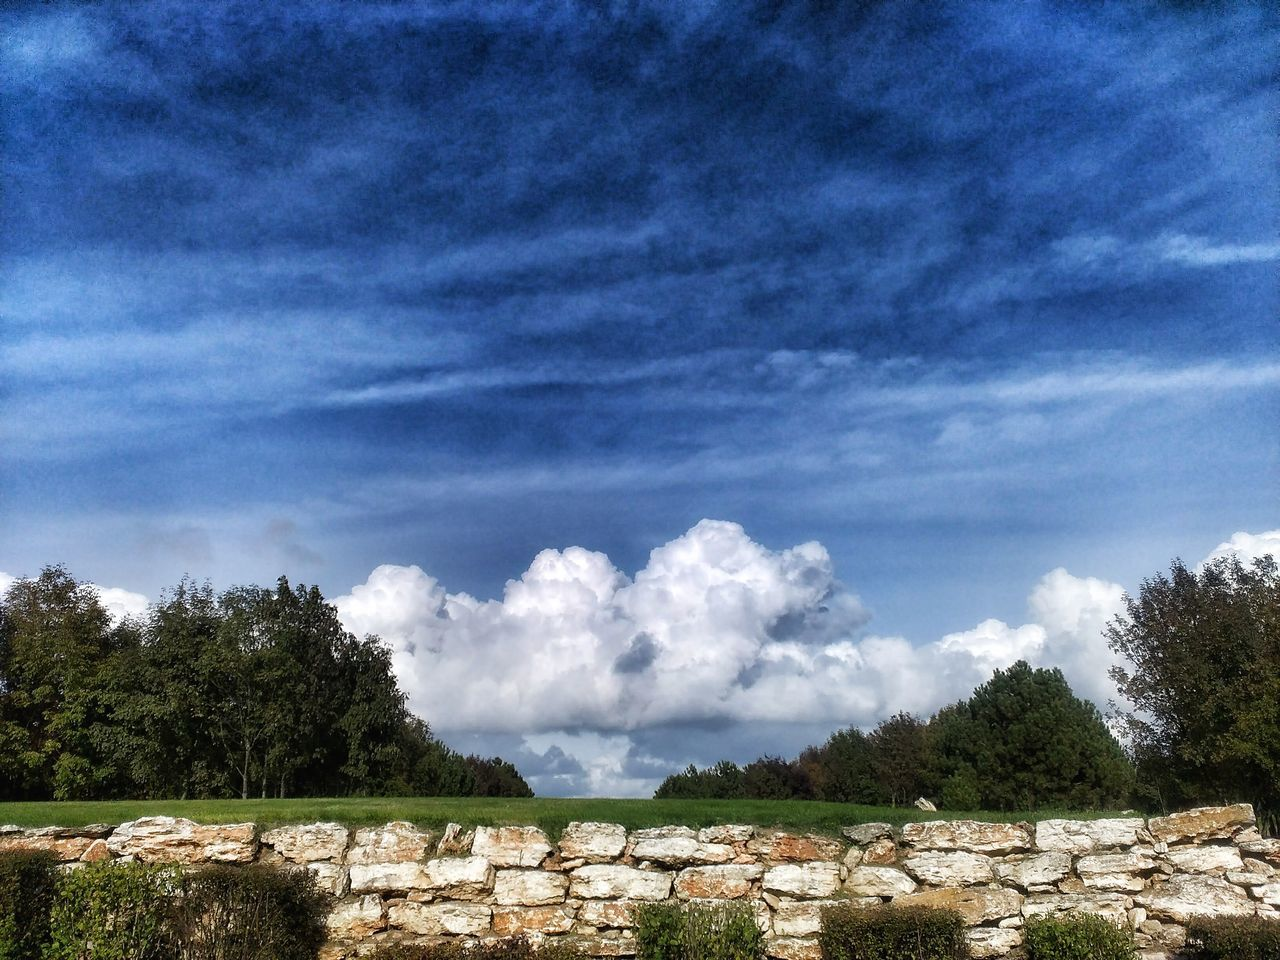 cloud - sky, sky, tree, day, outdoors, nature, scenics, no people, tranquility, beauty in nature, building exterior, architecture